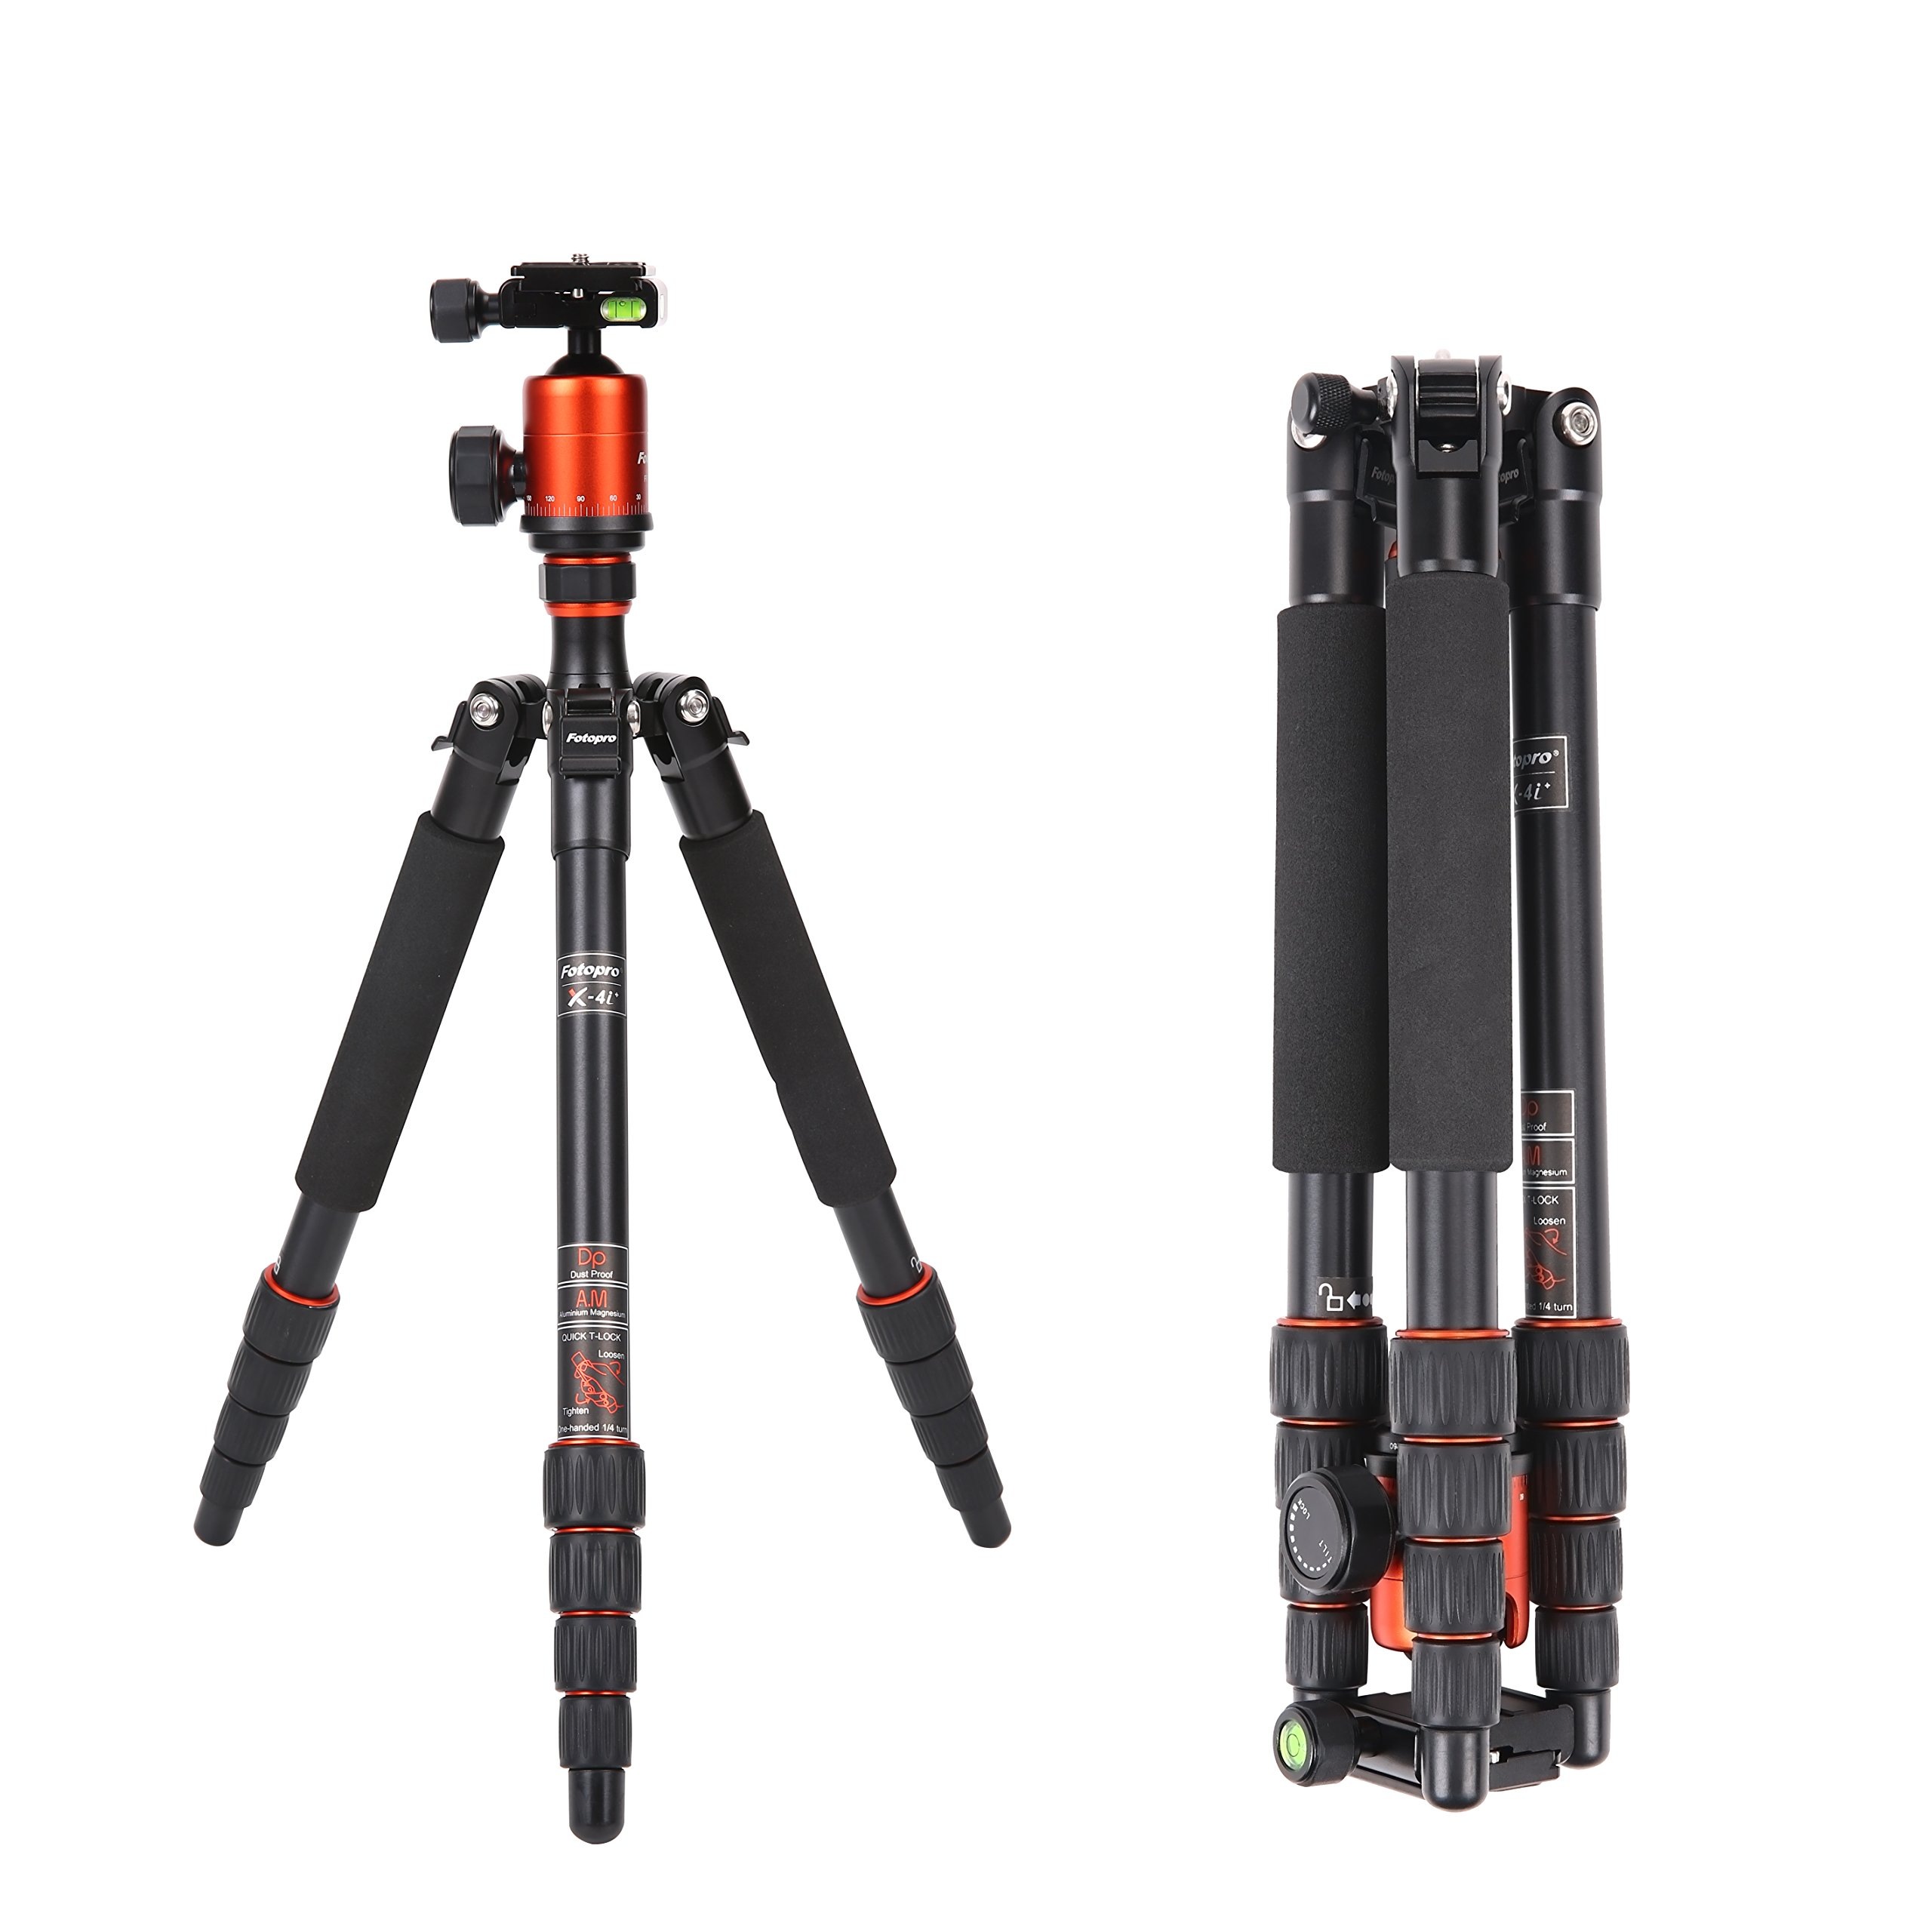 Camera Tripod,Fotopro X4i+ Alluminum Alloy Professional Compact Travel Portable Camera Tripod 53.5 Inch with Ball Head Quick Release Plate DSLR Tripod for Camera Nikon/Sony/Pentax/Canon,Orange